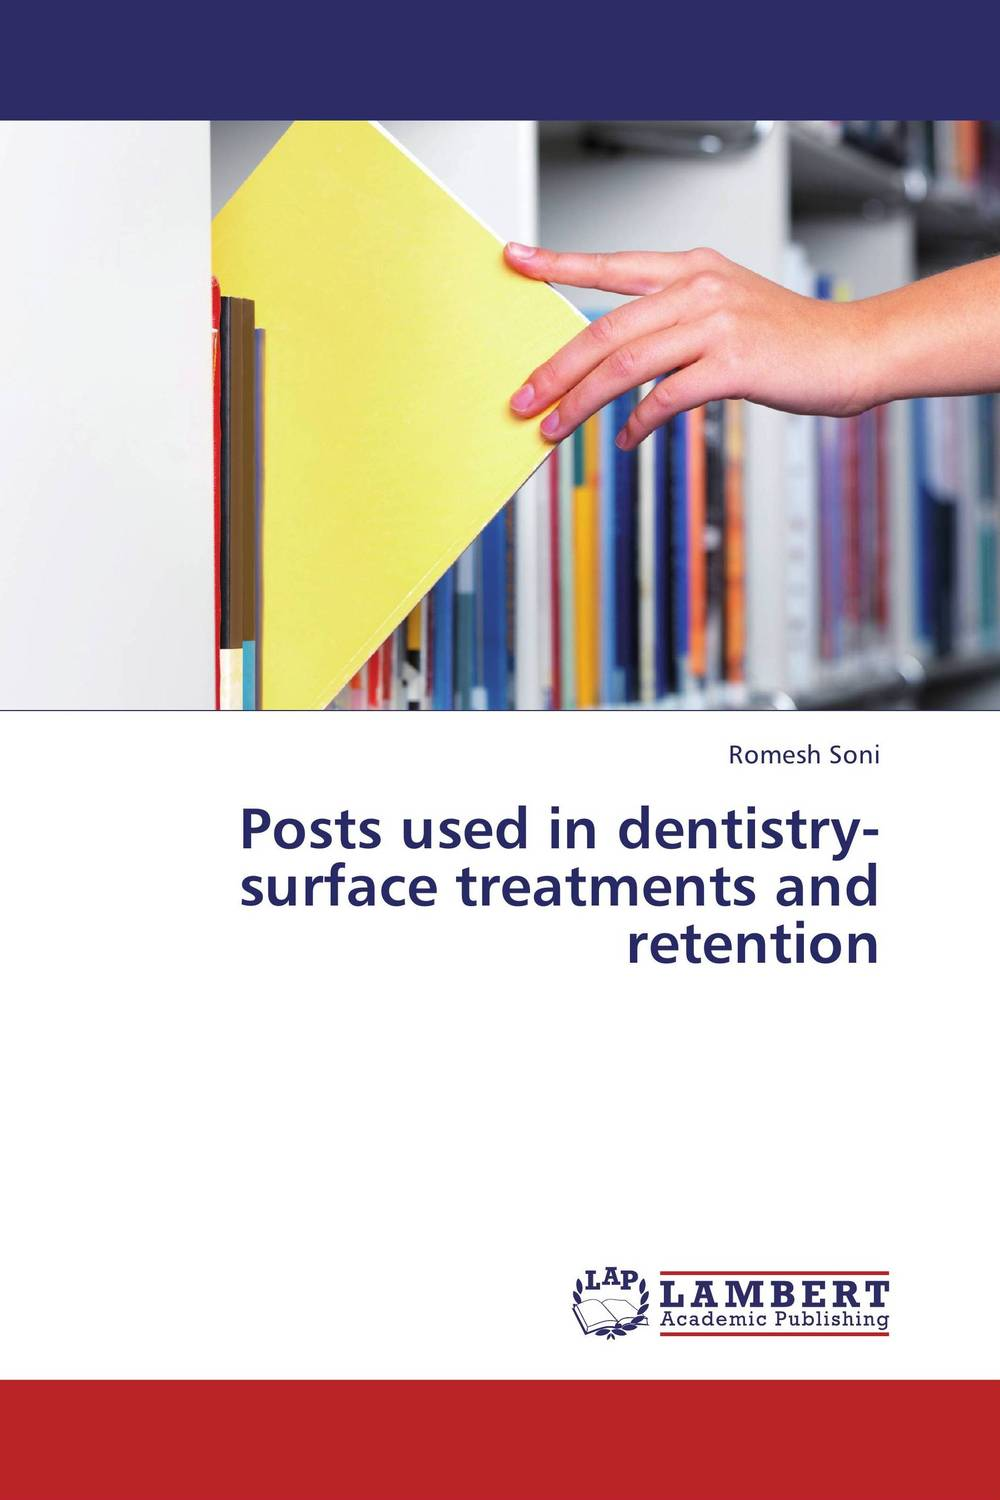 Posts used in dentistry-surface treatments and retention karanprakash singh ramanpreet kaur bhullar and sumit kochhar forensic dentistry teeth and their secrets